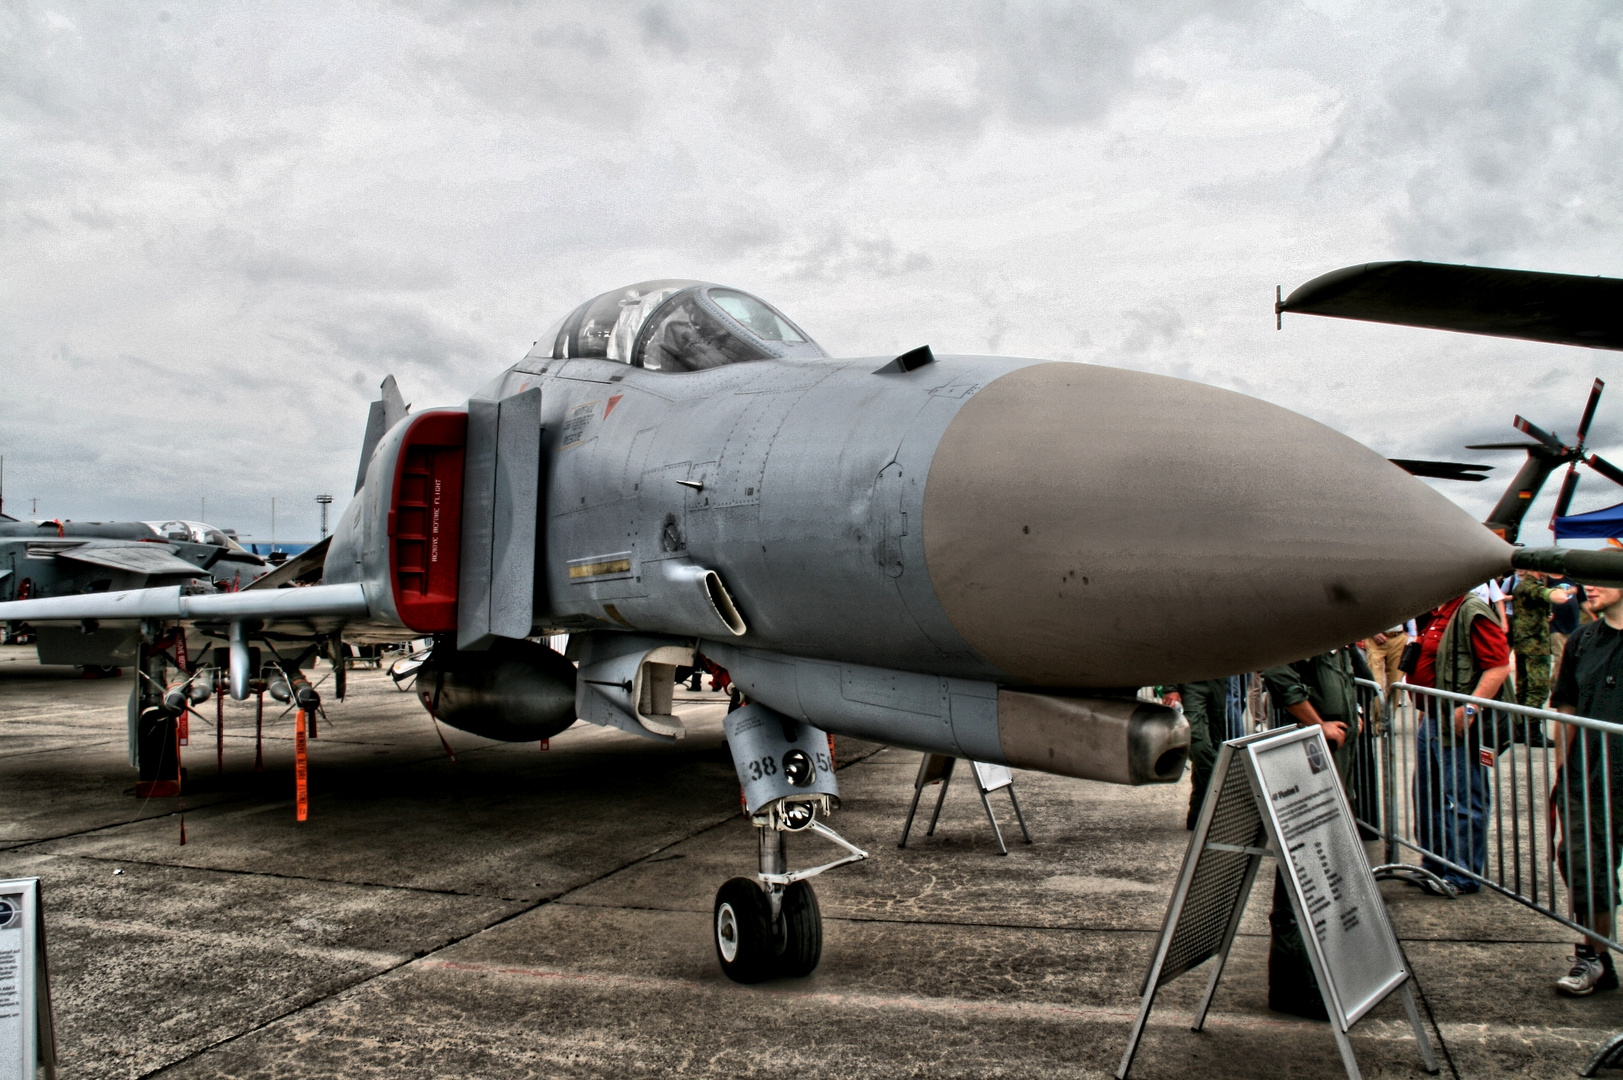 The old F-4.....